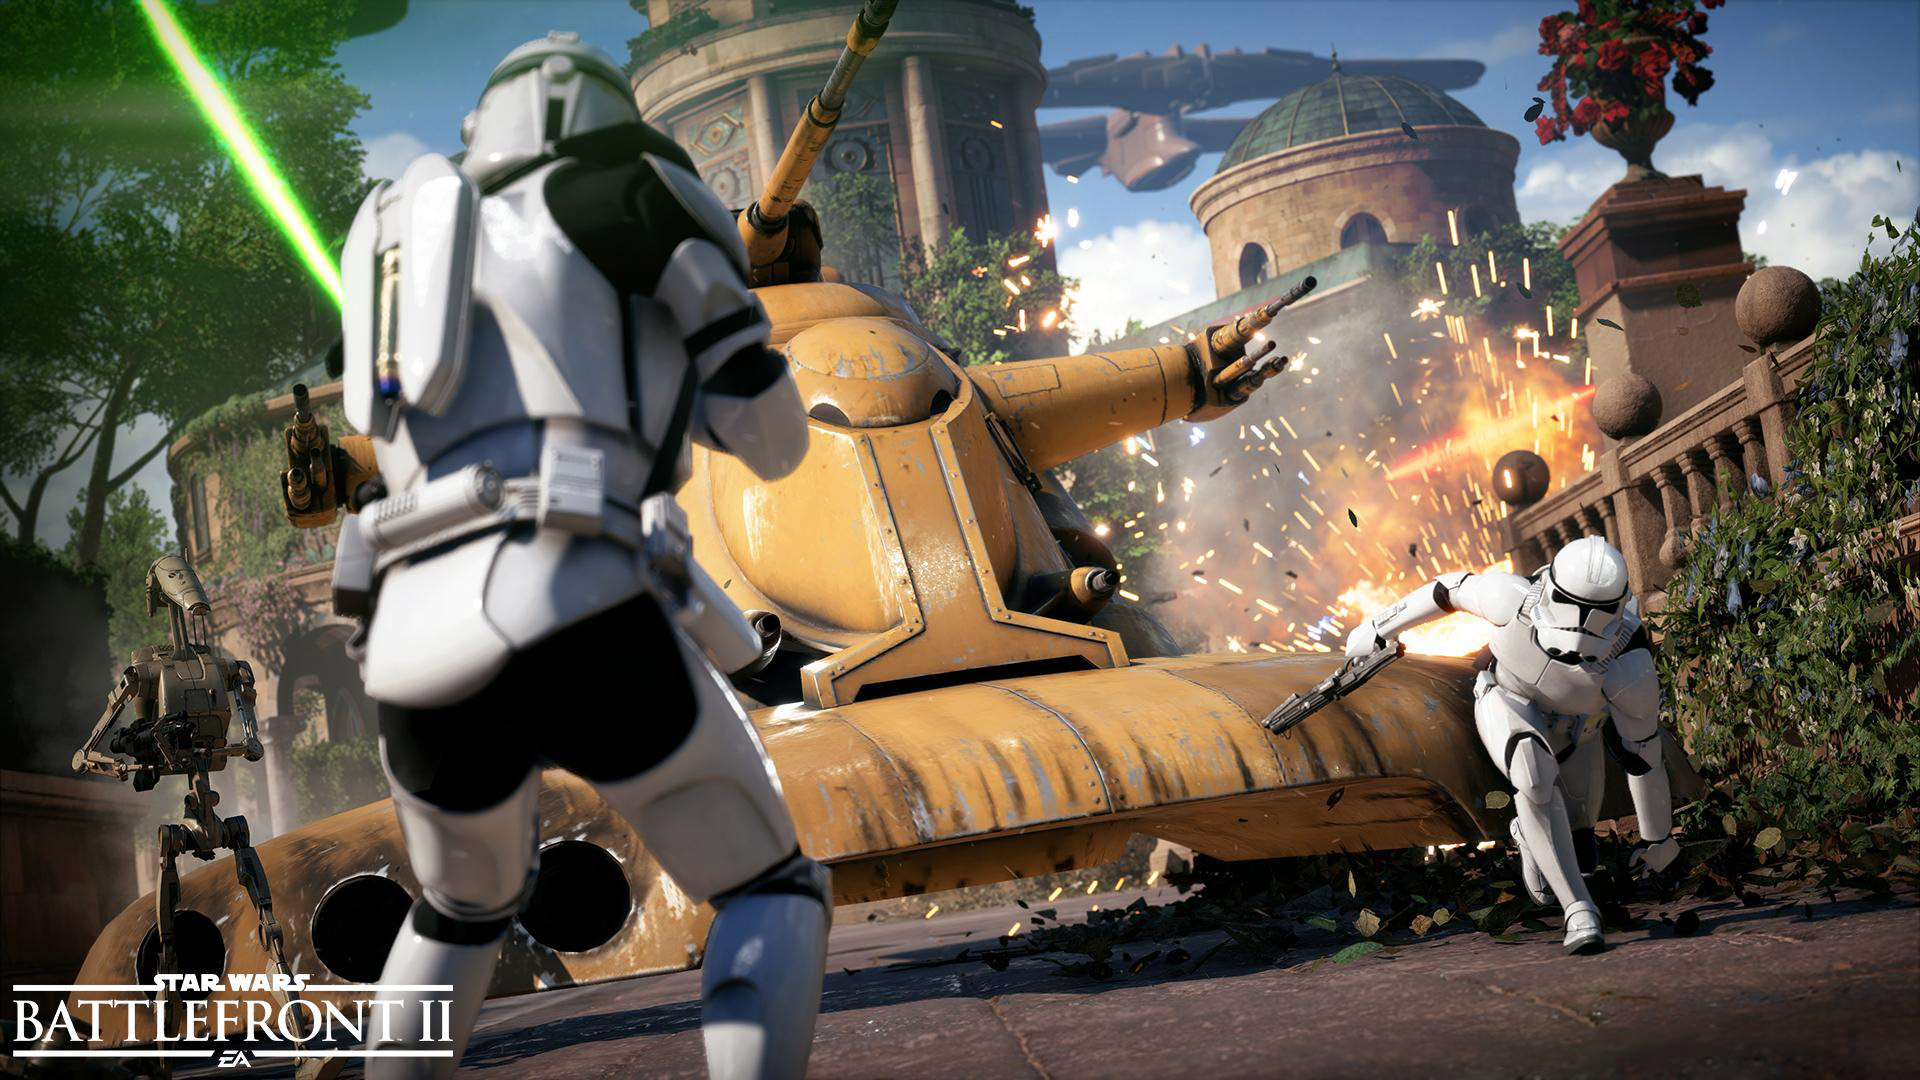 Star Wars Battlefront 2 Wallpaper 12 Wallpapersbq